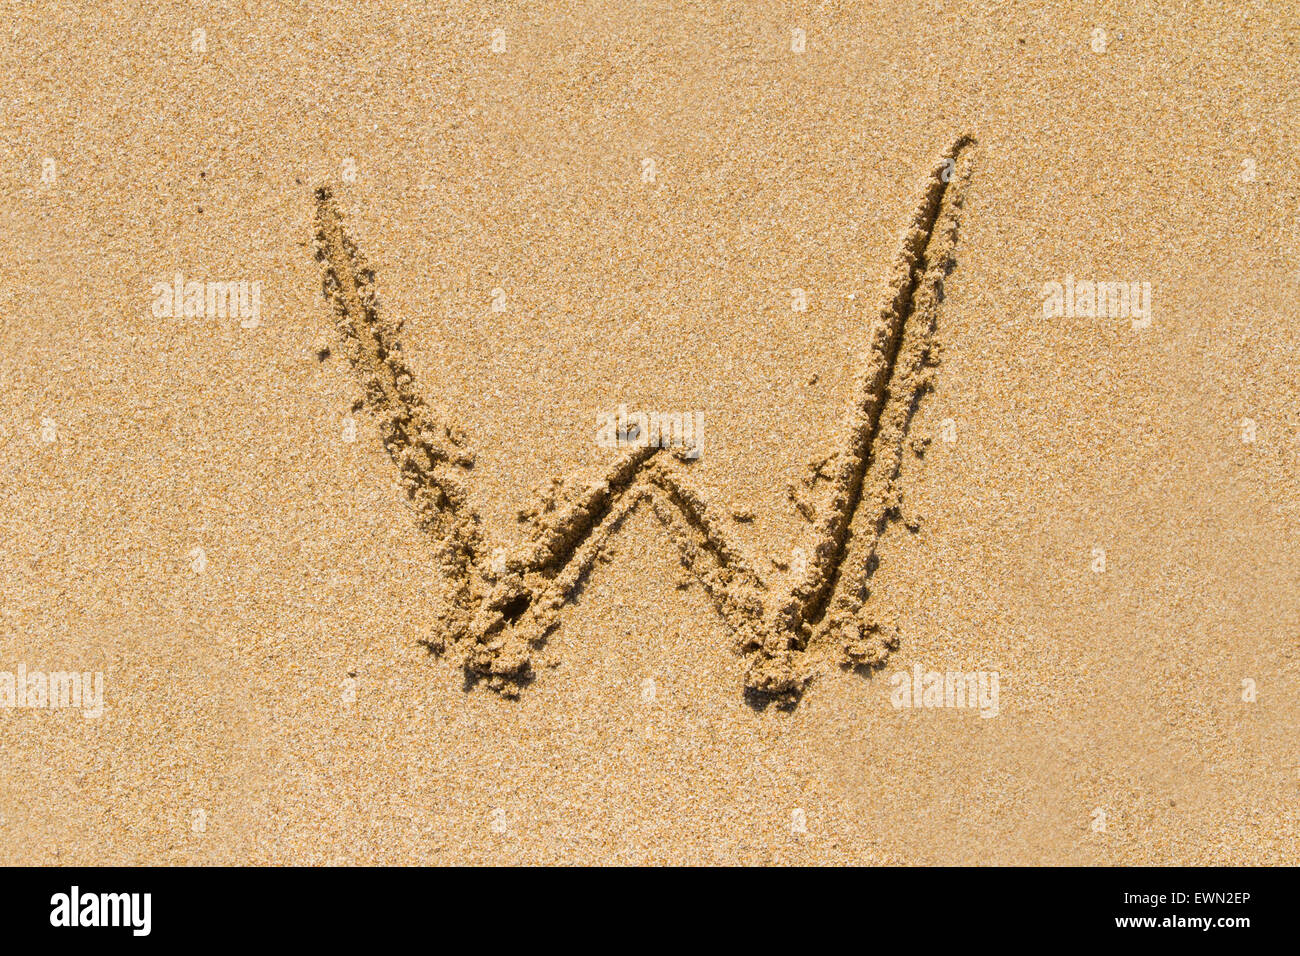 Letter W of the alphabet written on sand with upper case. - Stock Image